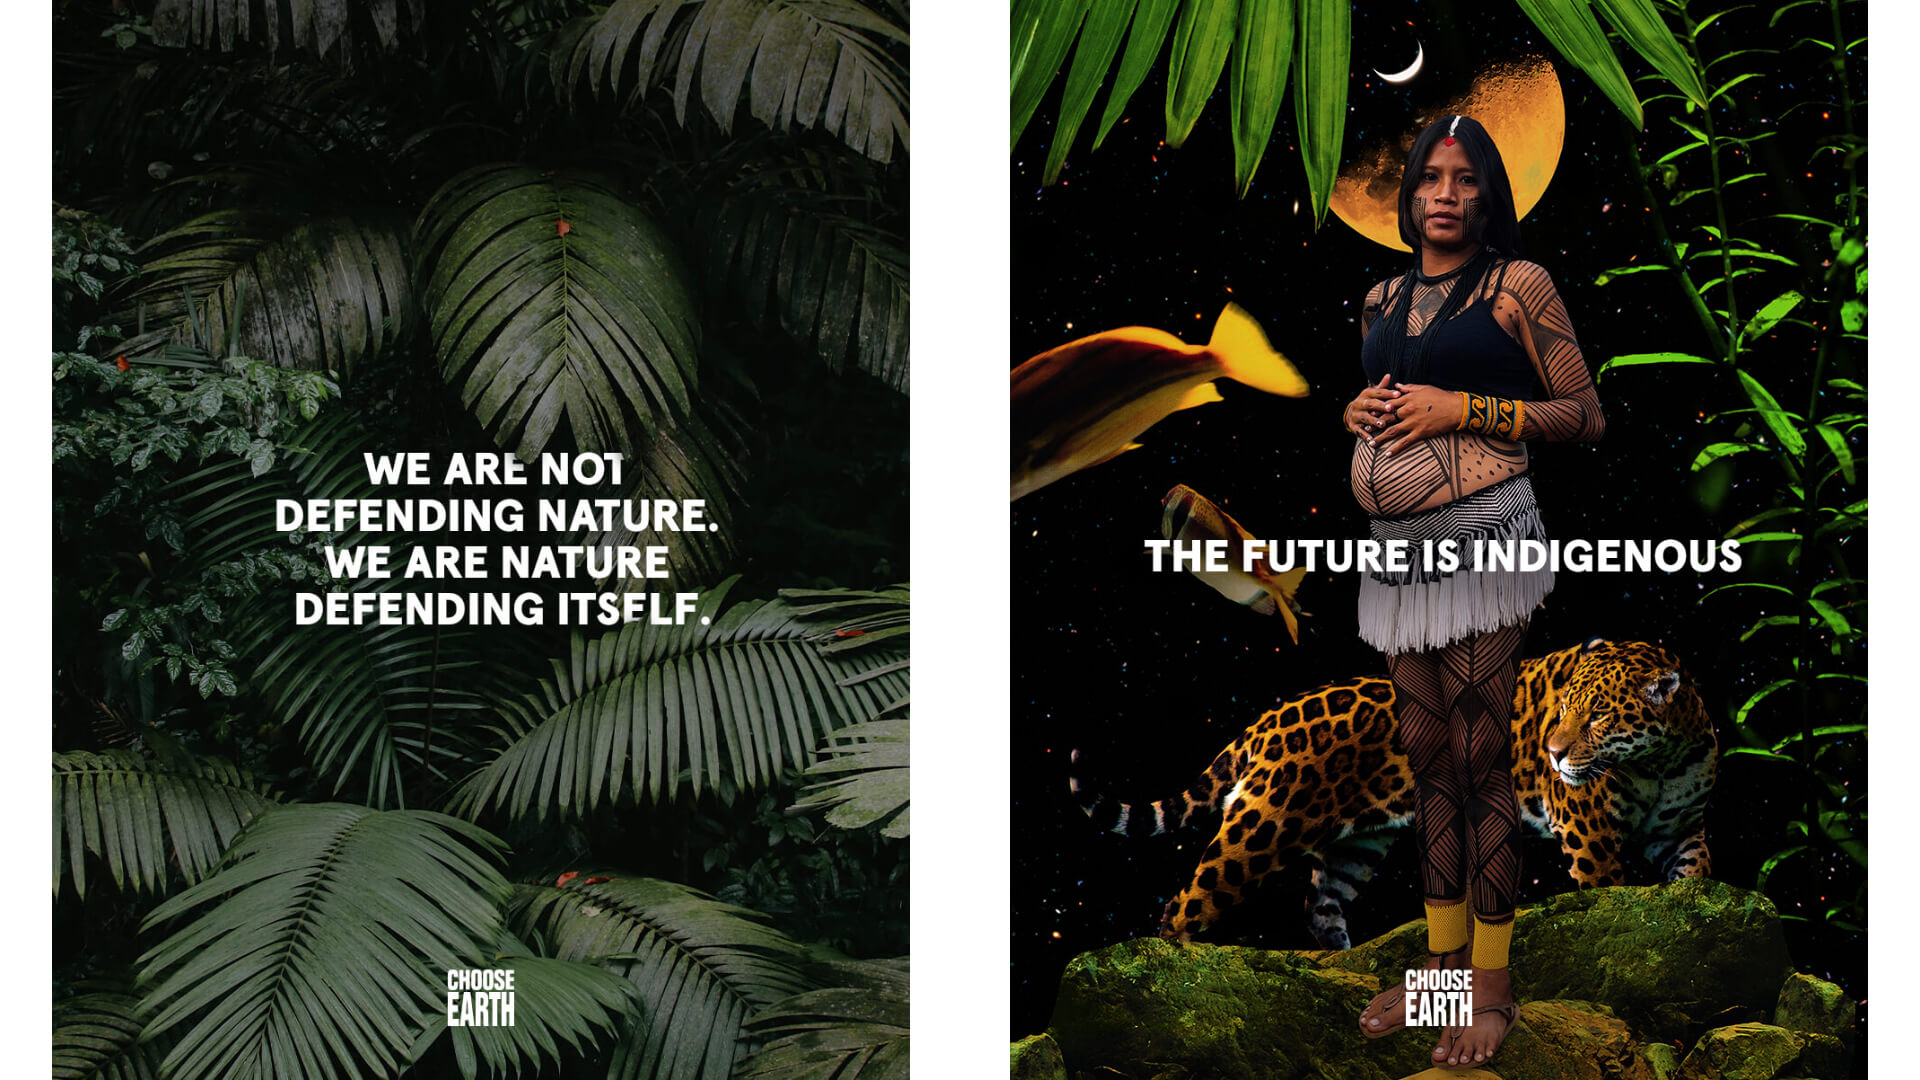 CHOOSE EARTH poster with a quote and indigenous woman with a leopard